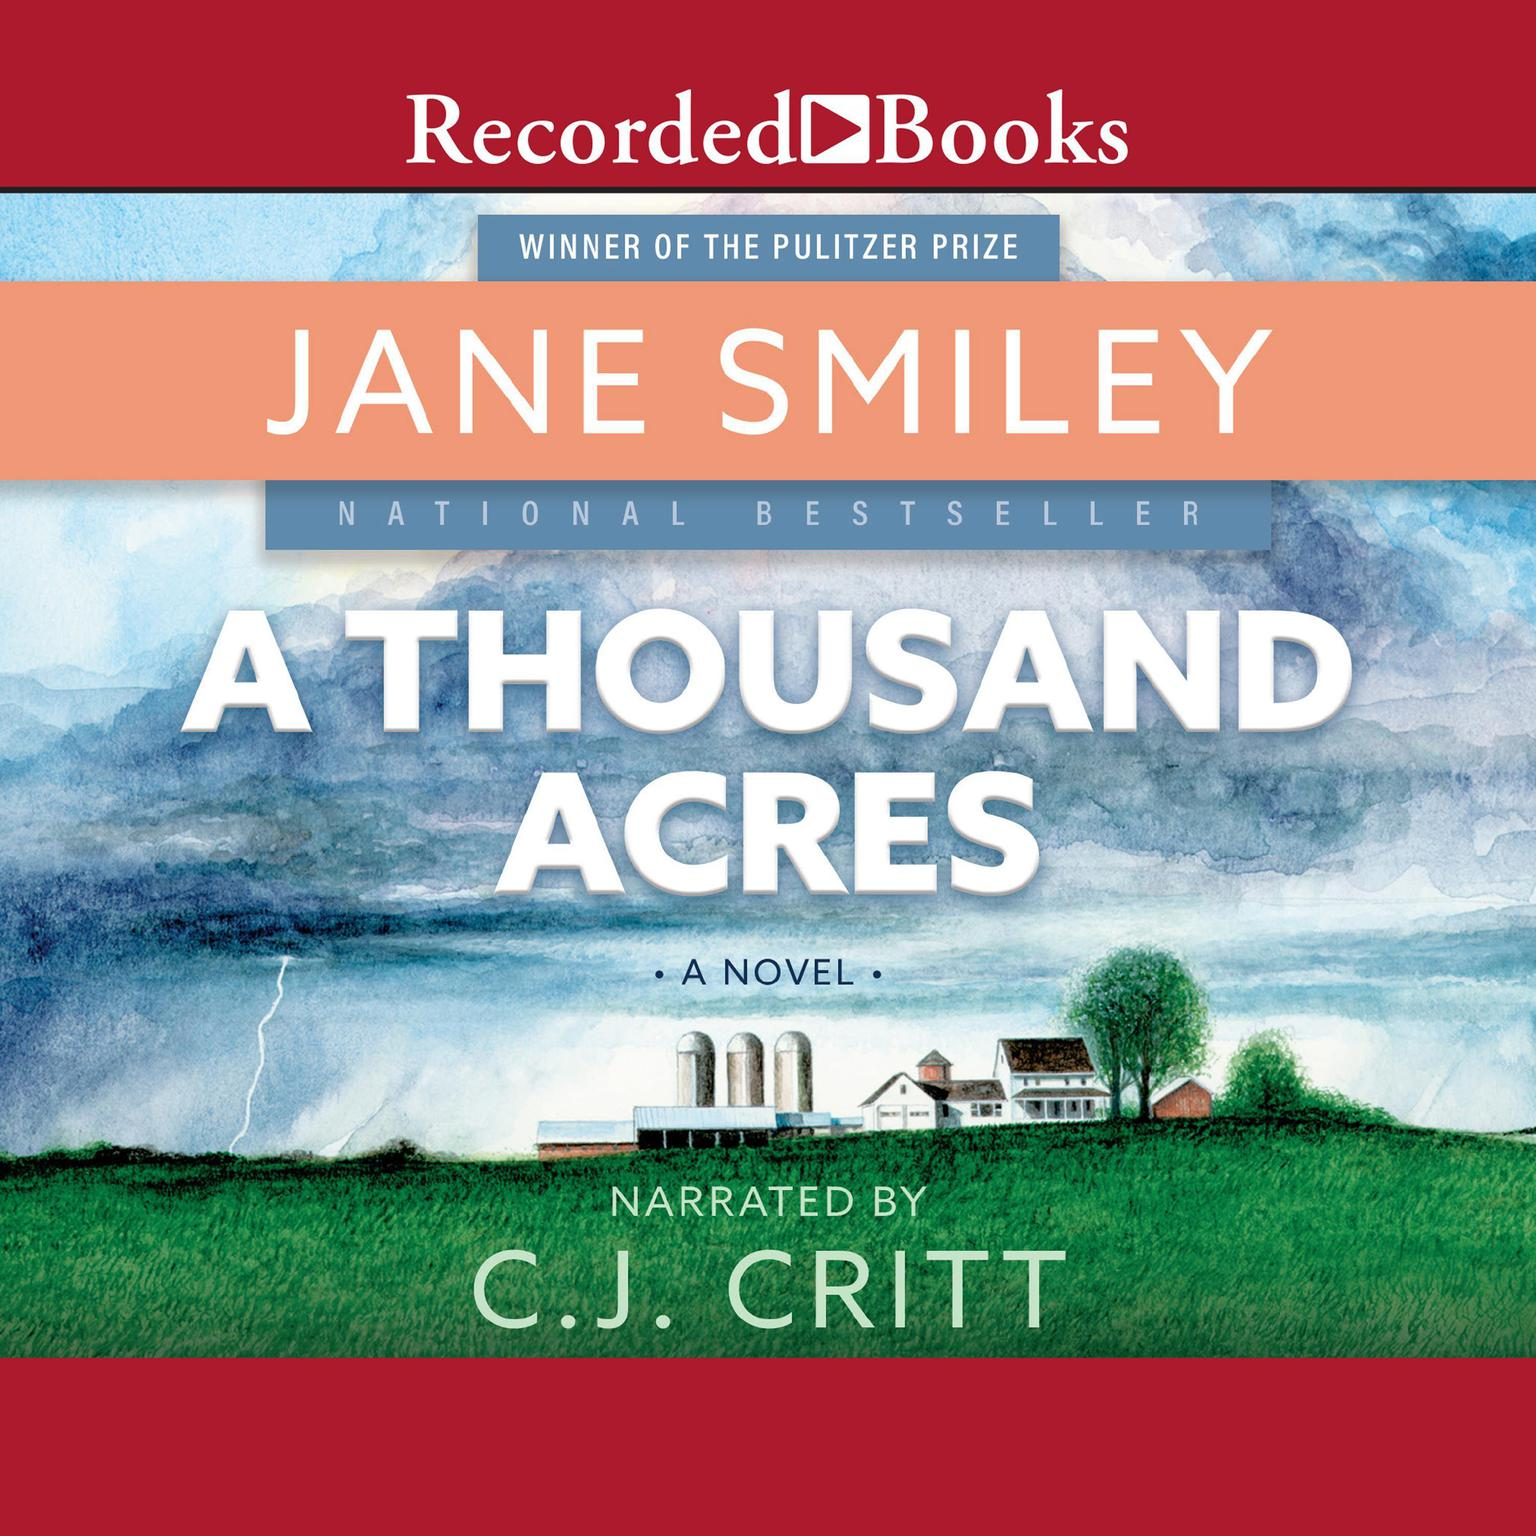 a review of a thousand acres a novel by jane smiley Complete summary of jane smiley's a thousand acres enotes plot summaries cover all the significant action of a thousand acres  in a thousand acres, why do feminists claim smiley's novel as .